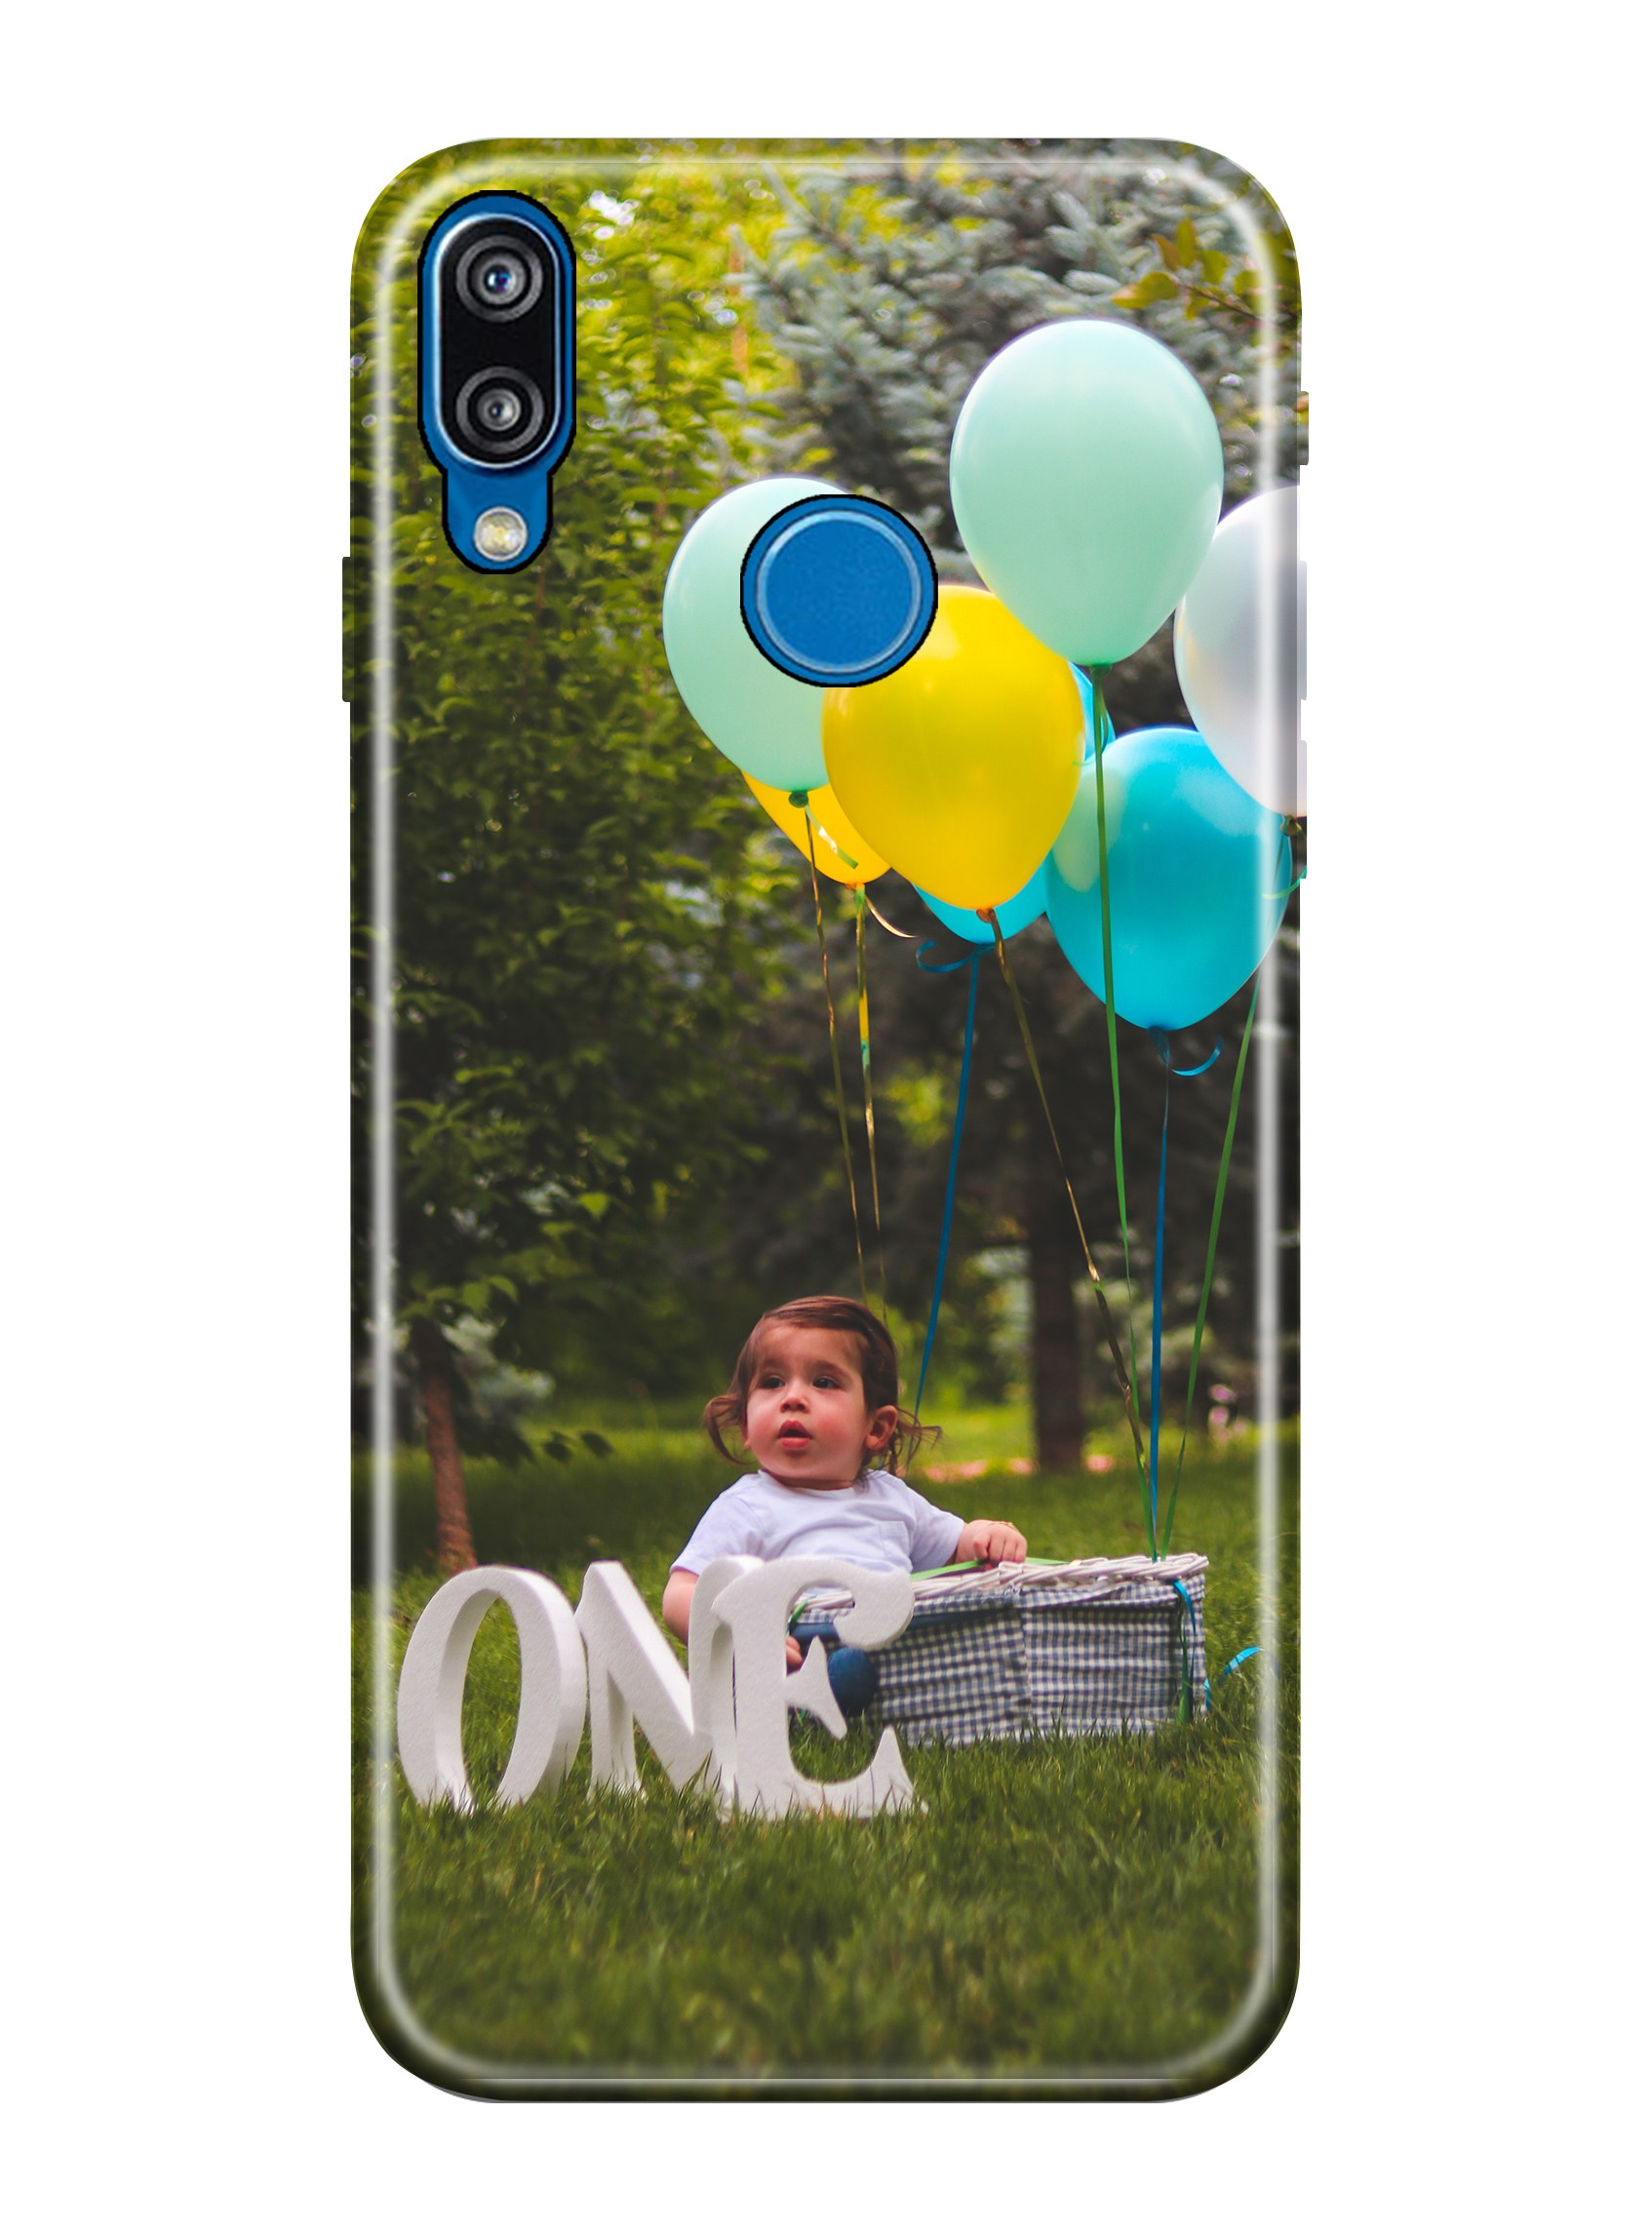 Personalised Case for Huawei Nova 3